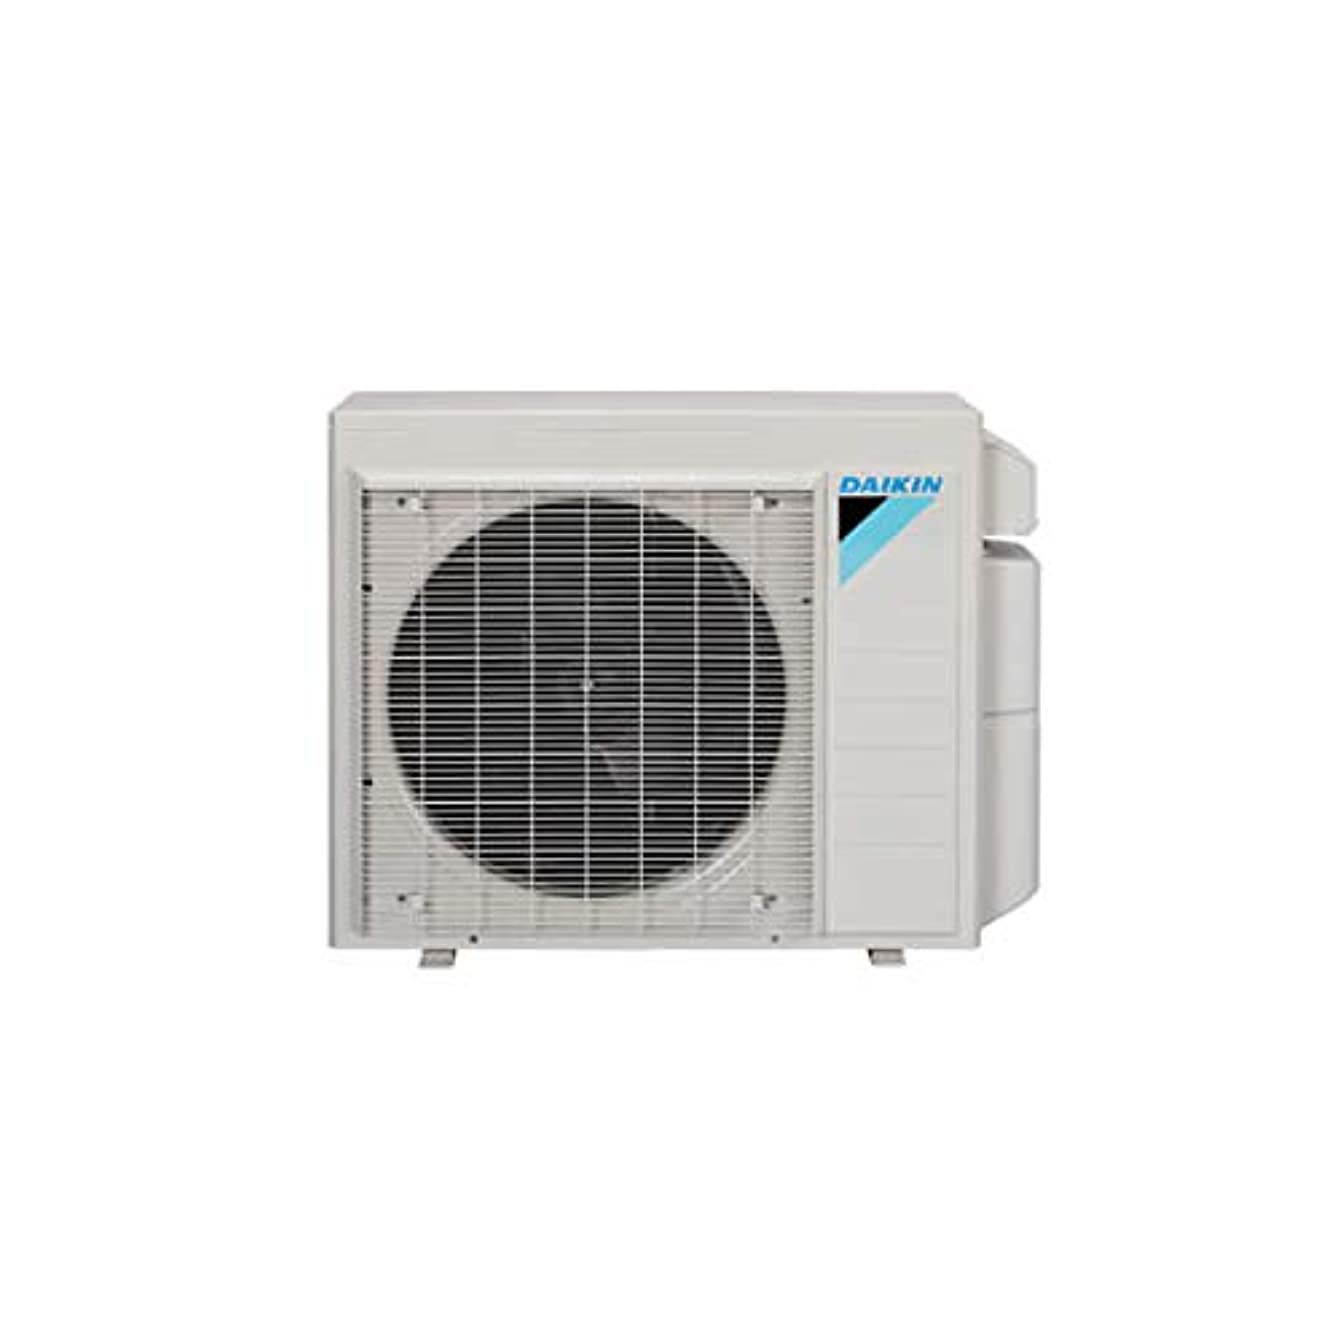 Daikin 12,000 Btu 17 Seer Ductless Mini Split Heat Pump Condenser (Outdoor Unit Only)